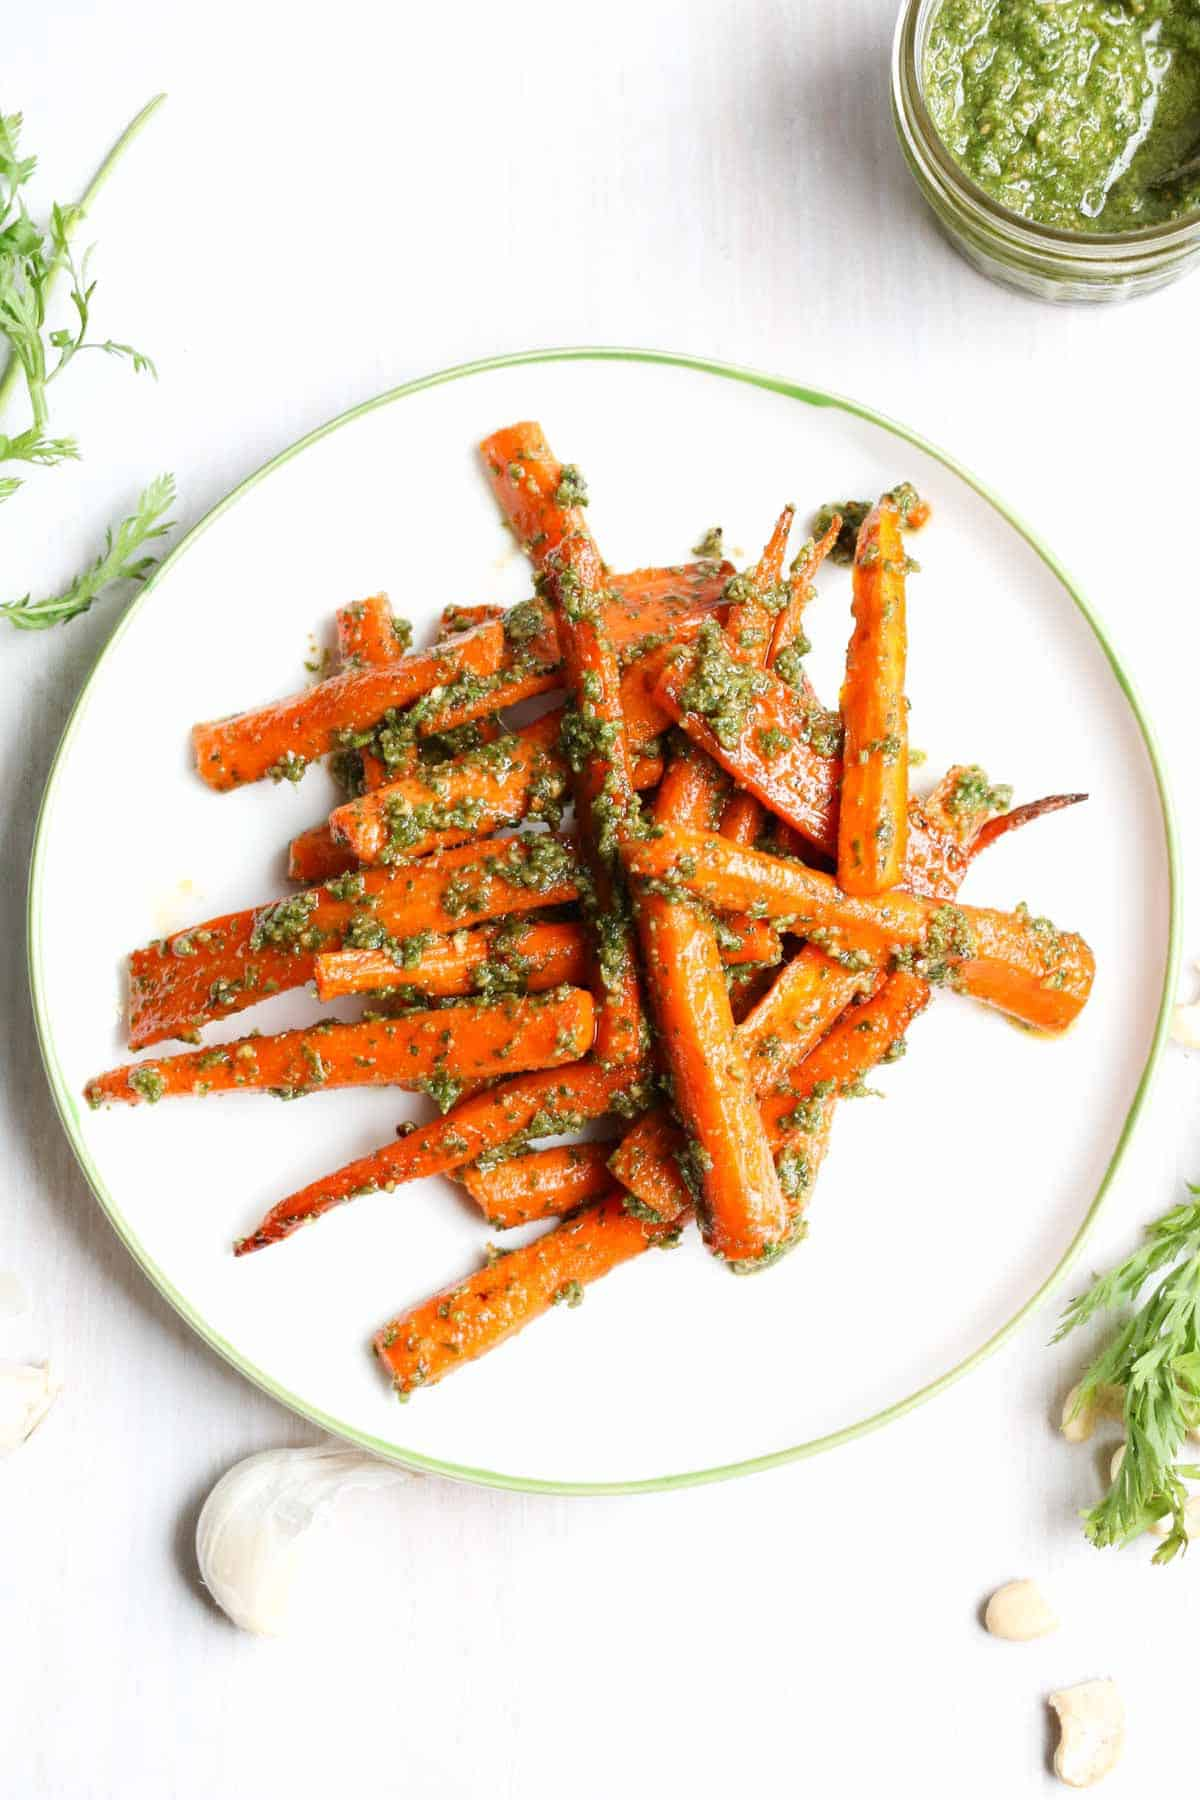 Cashew carrot top pesto with roasted carrots + 15 Farmers market recipes to make in May! Delicious, vegetarian, (mostly) healthy spring/summer recipes made with fresh, seasonal produce from your local farmers market or CSA bin. Eat local! // Rhubarbarians